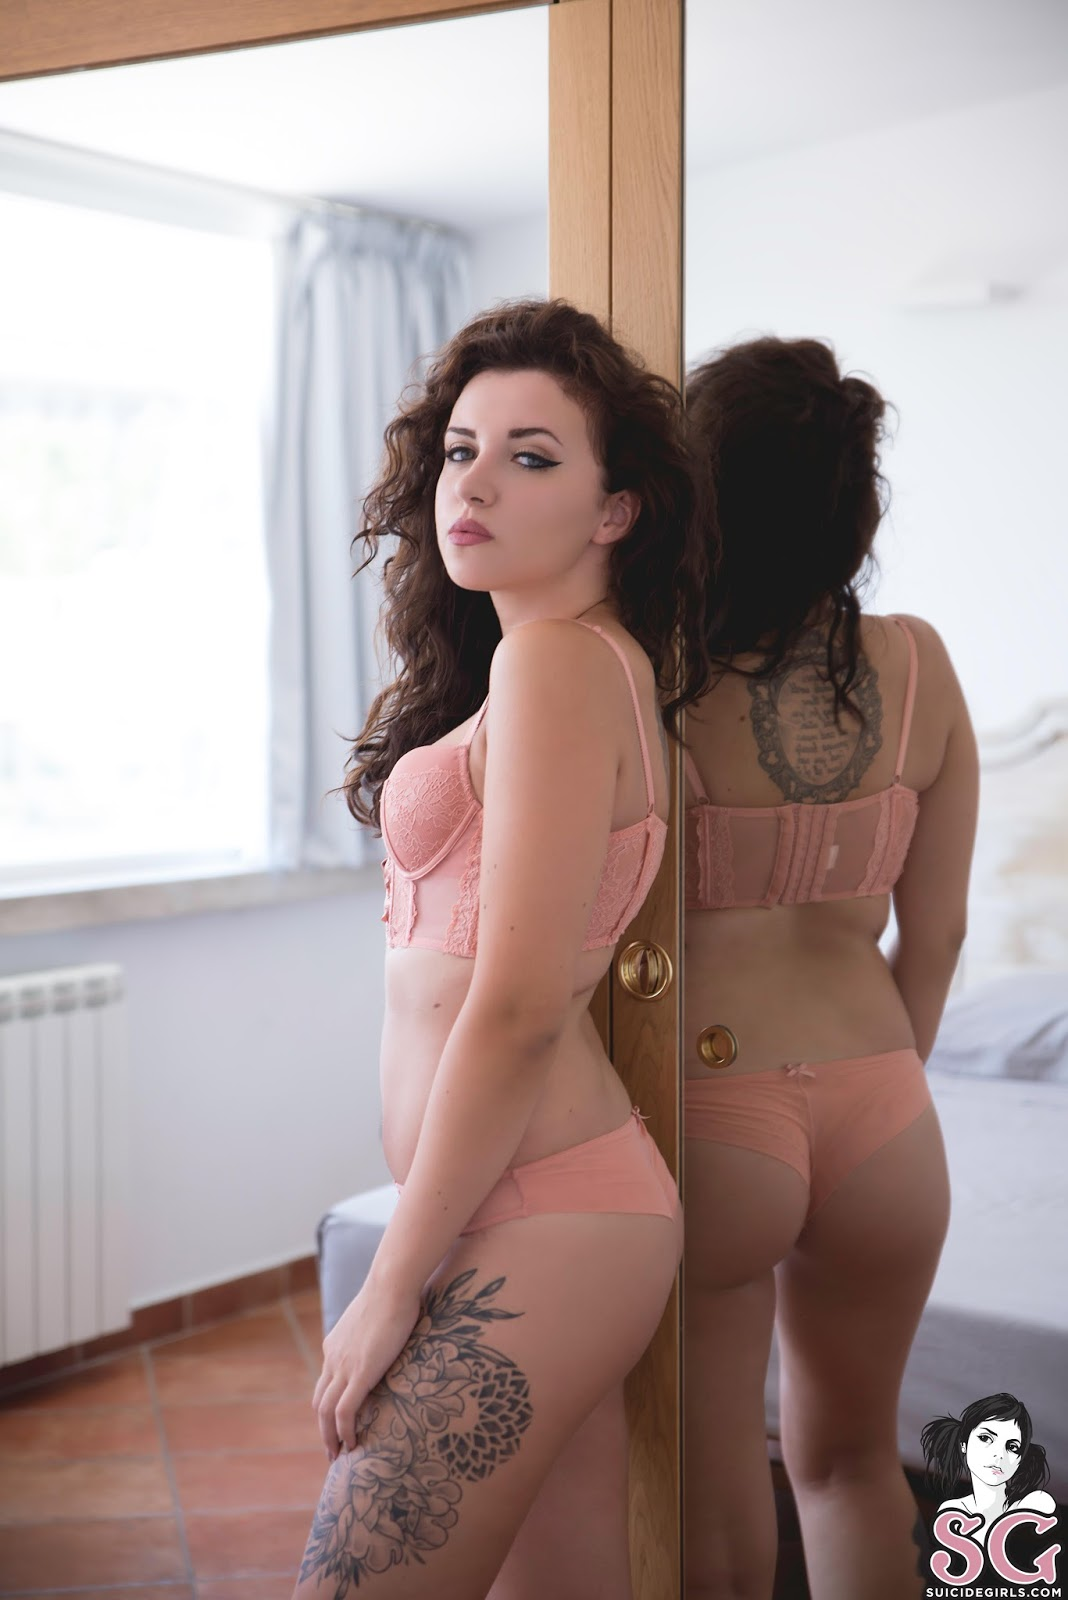 Porn movies online play